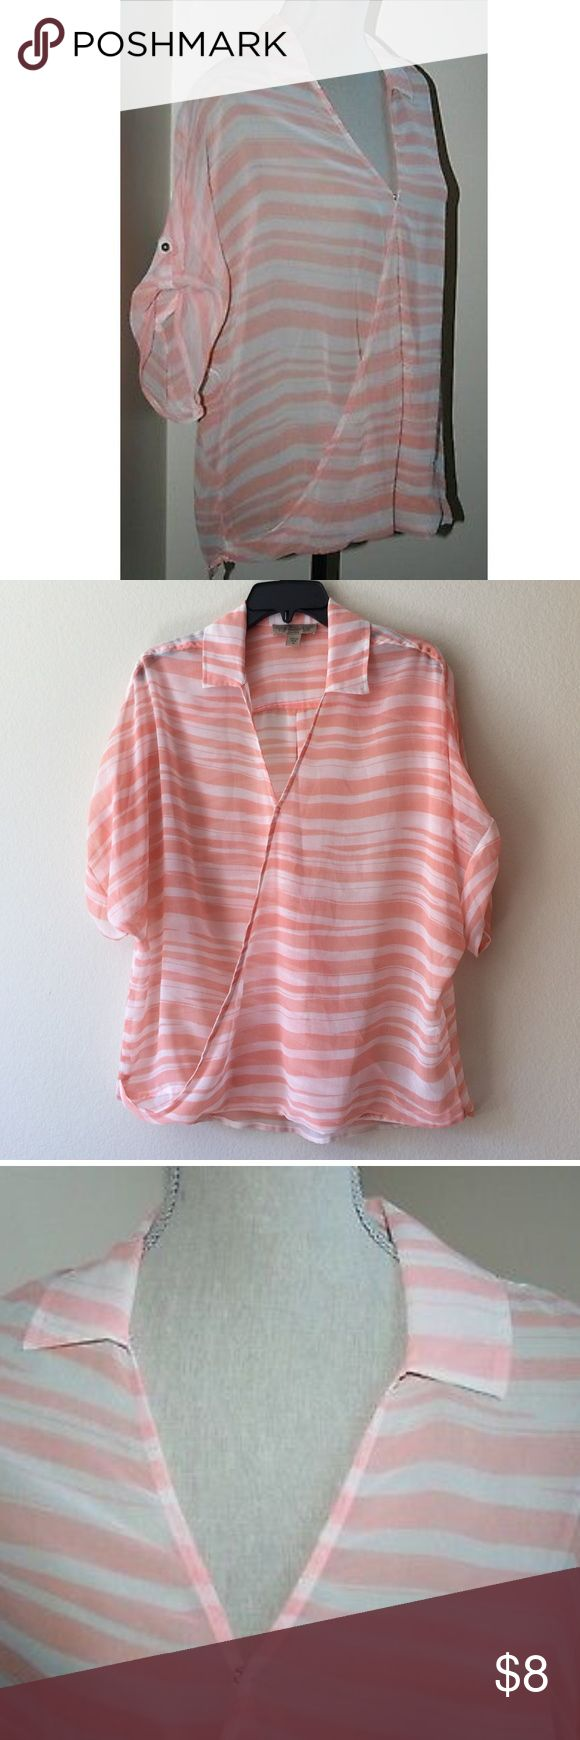 """VINTAGE AMERICA Izzy Stripe Faux Wrap Top Blouse NEW Nine West VINTAGE AMERICA Womens Izzy Stripe Faux Wrap Top Blouse SMALL* like new* The top measures approximately 23 inches from armpit to armpit (front side only). The front length measures approximately 26 inches. The back length measures approximately 29 inches.Colors:  """"Corallo Combo"""" Soft orange & white stripes. Short Sleeve. Sheer. Faux Wrap. 1-snap front closure. A draped, full cut fit. Fabric:  100% polyester. Tops Blouses"""